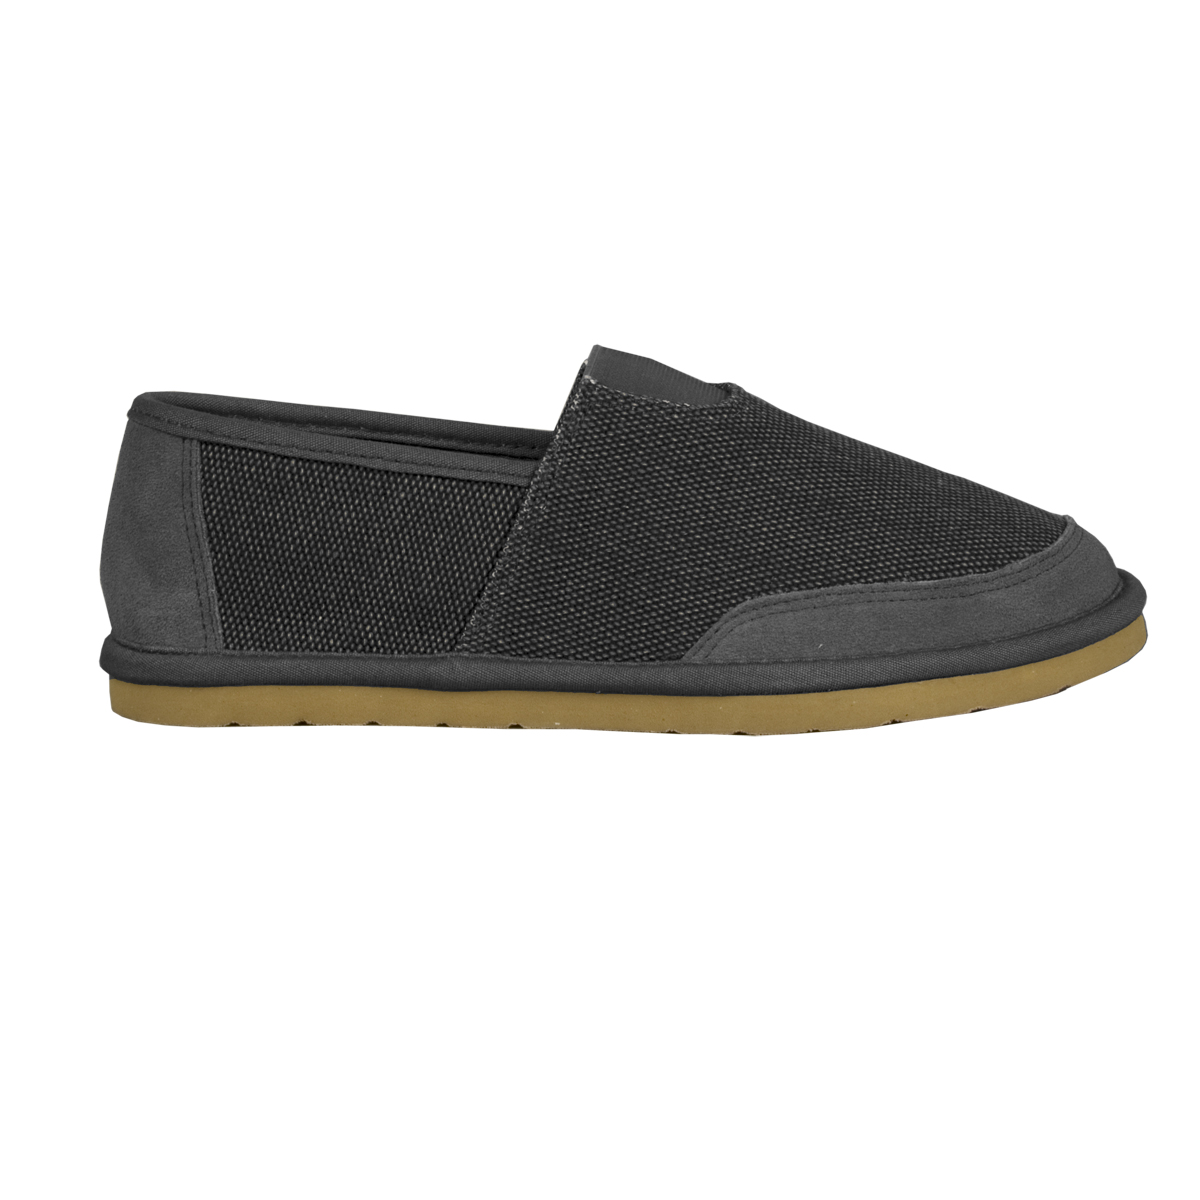 Lugz Root Mens Slip On Charcoal/Gum